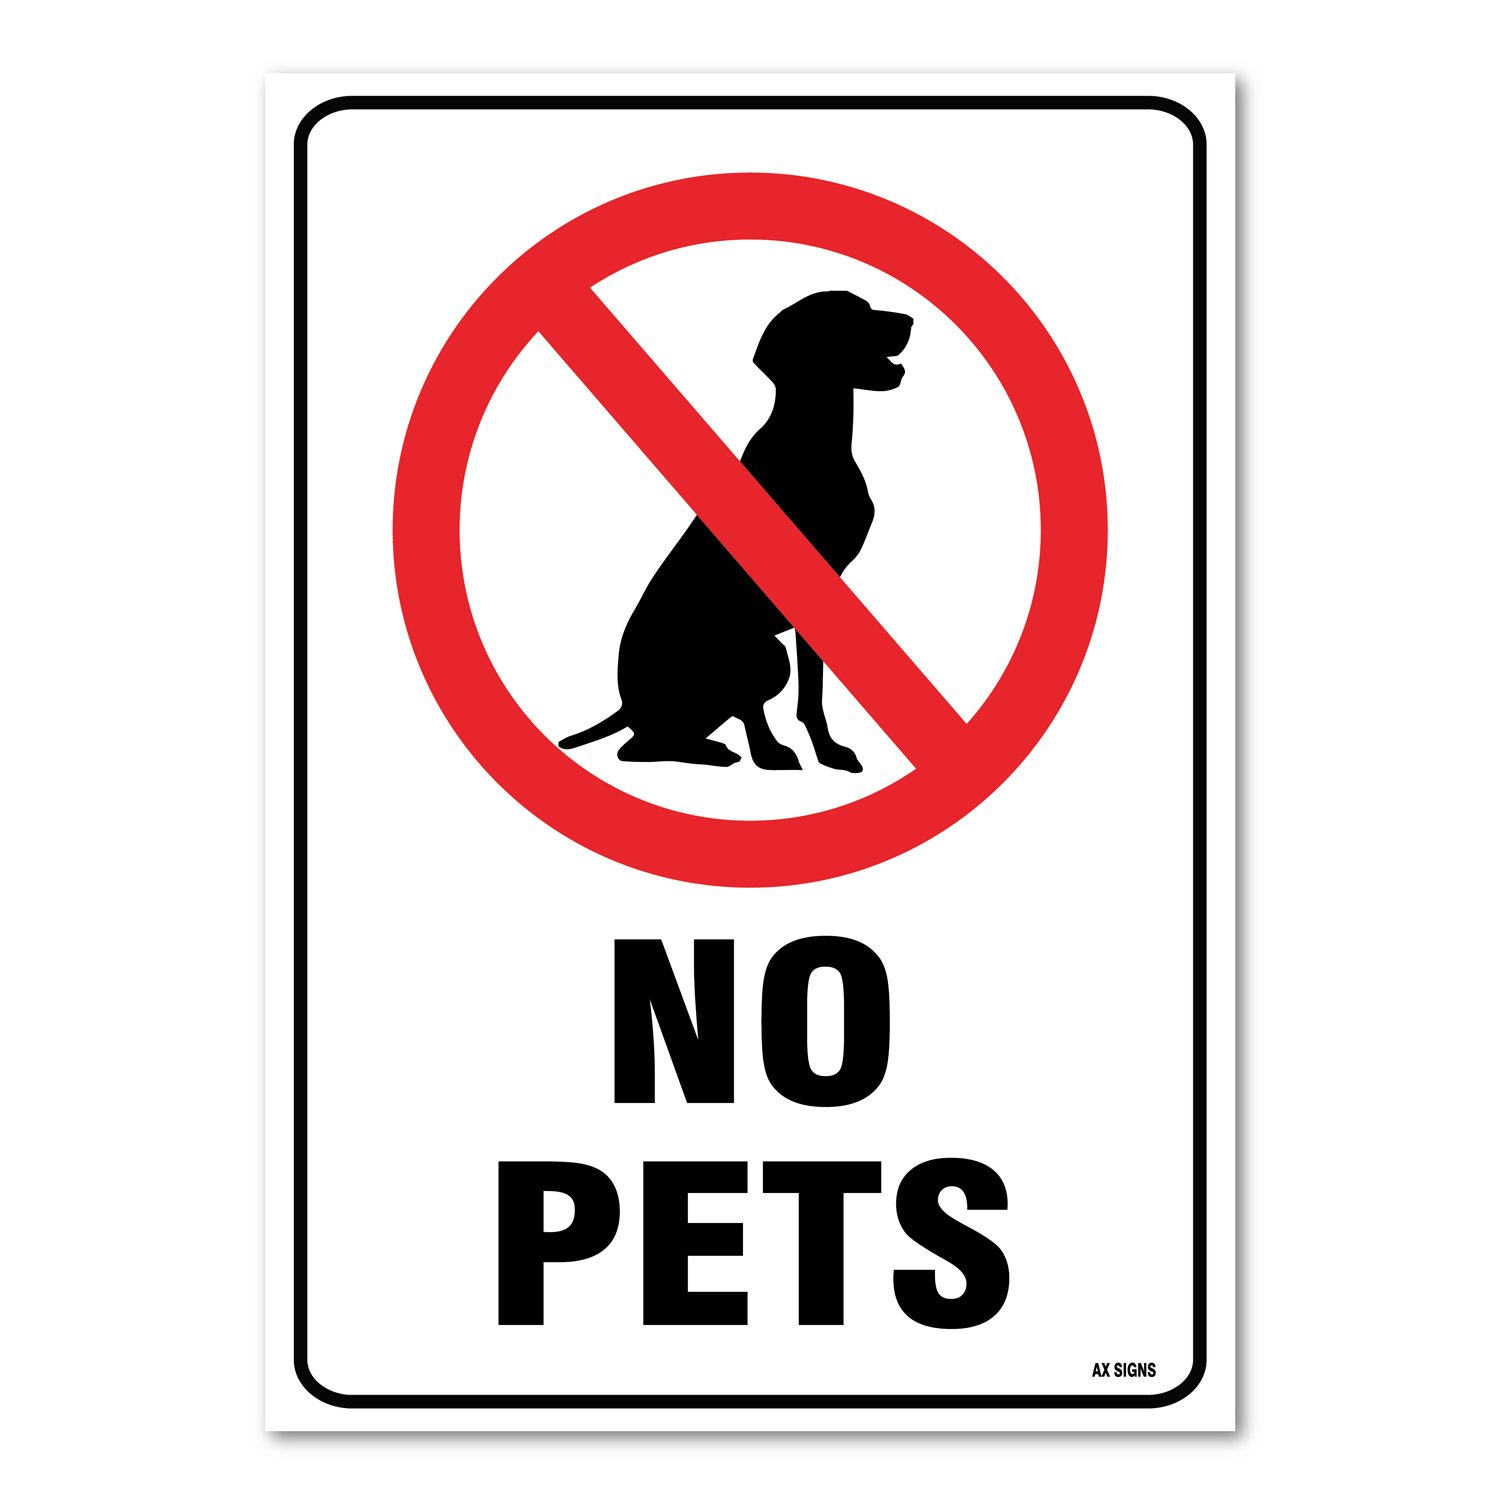 Self Adhesive Large 10 X 14 Inch Vinyl Sticker AX Signs Indoor and Outdoor Use UV Protected Rust Free No Pets Allowed Sign Waterproof Large 10 X 14 Inch Vinyl Sticker